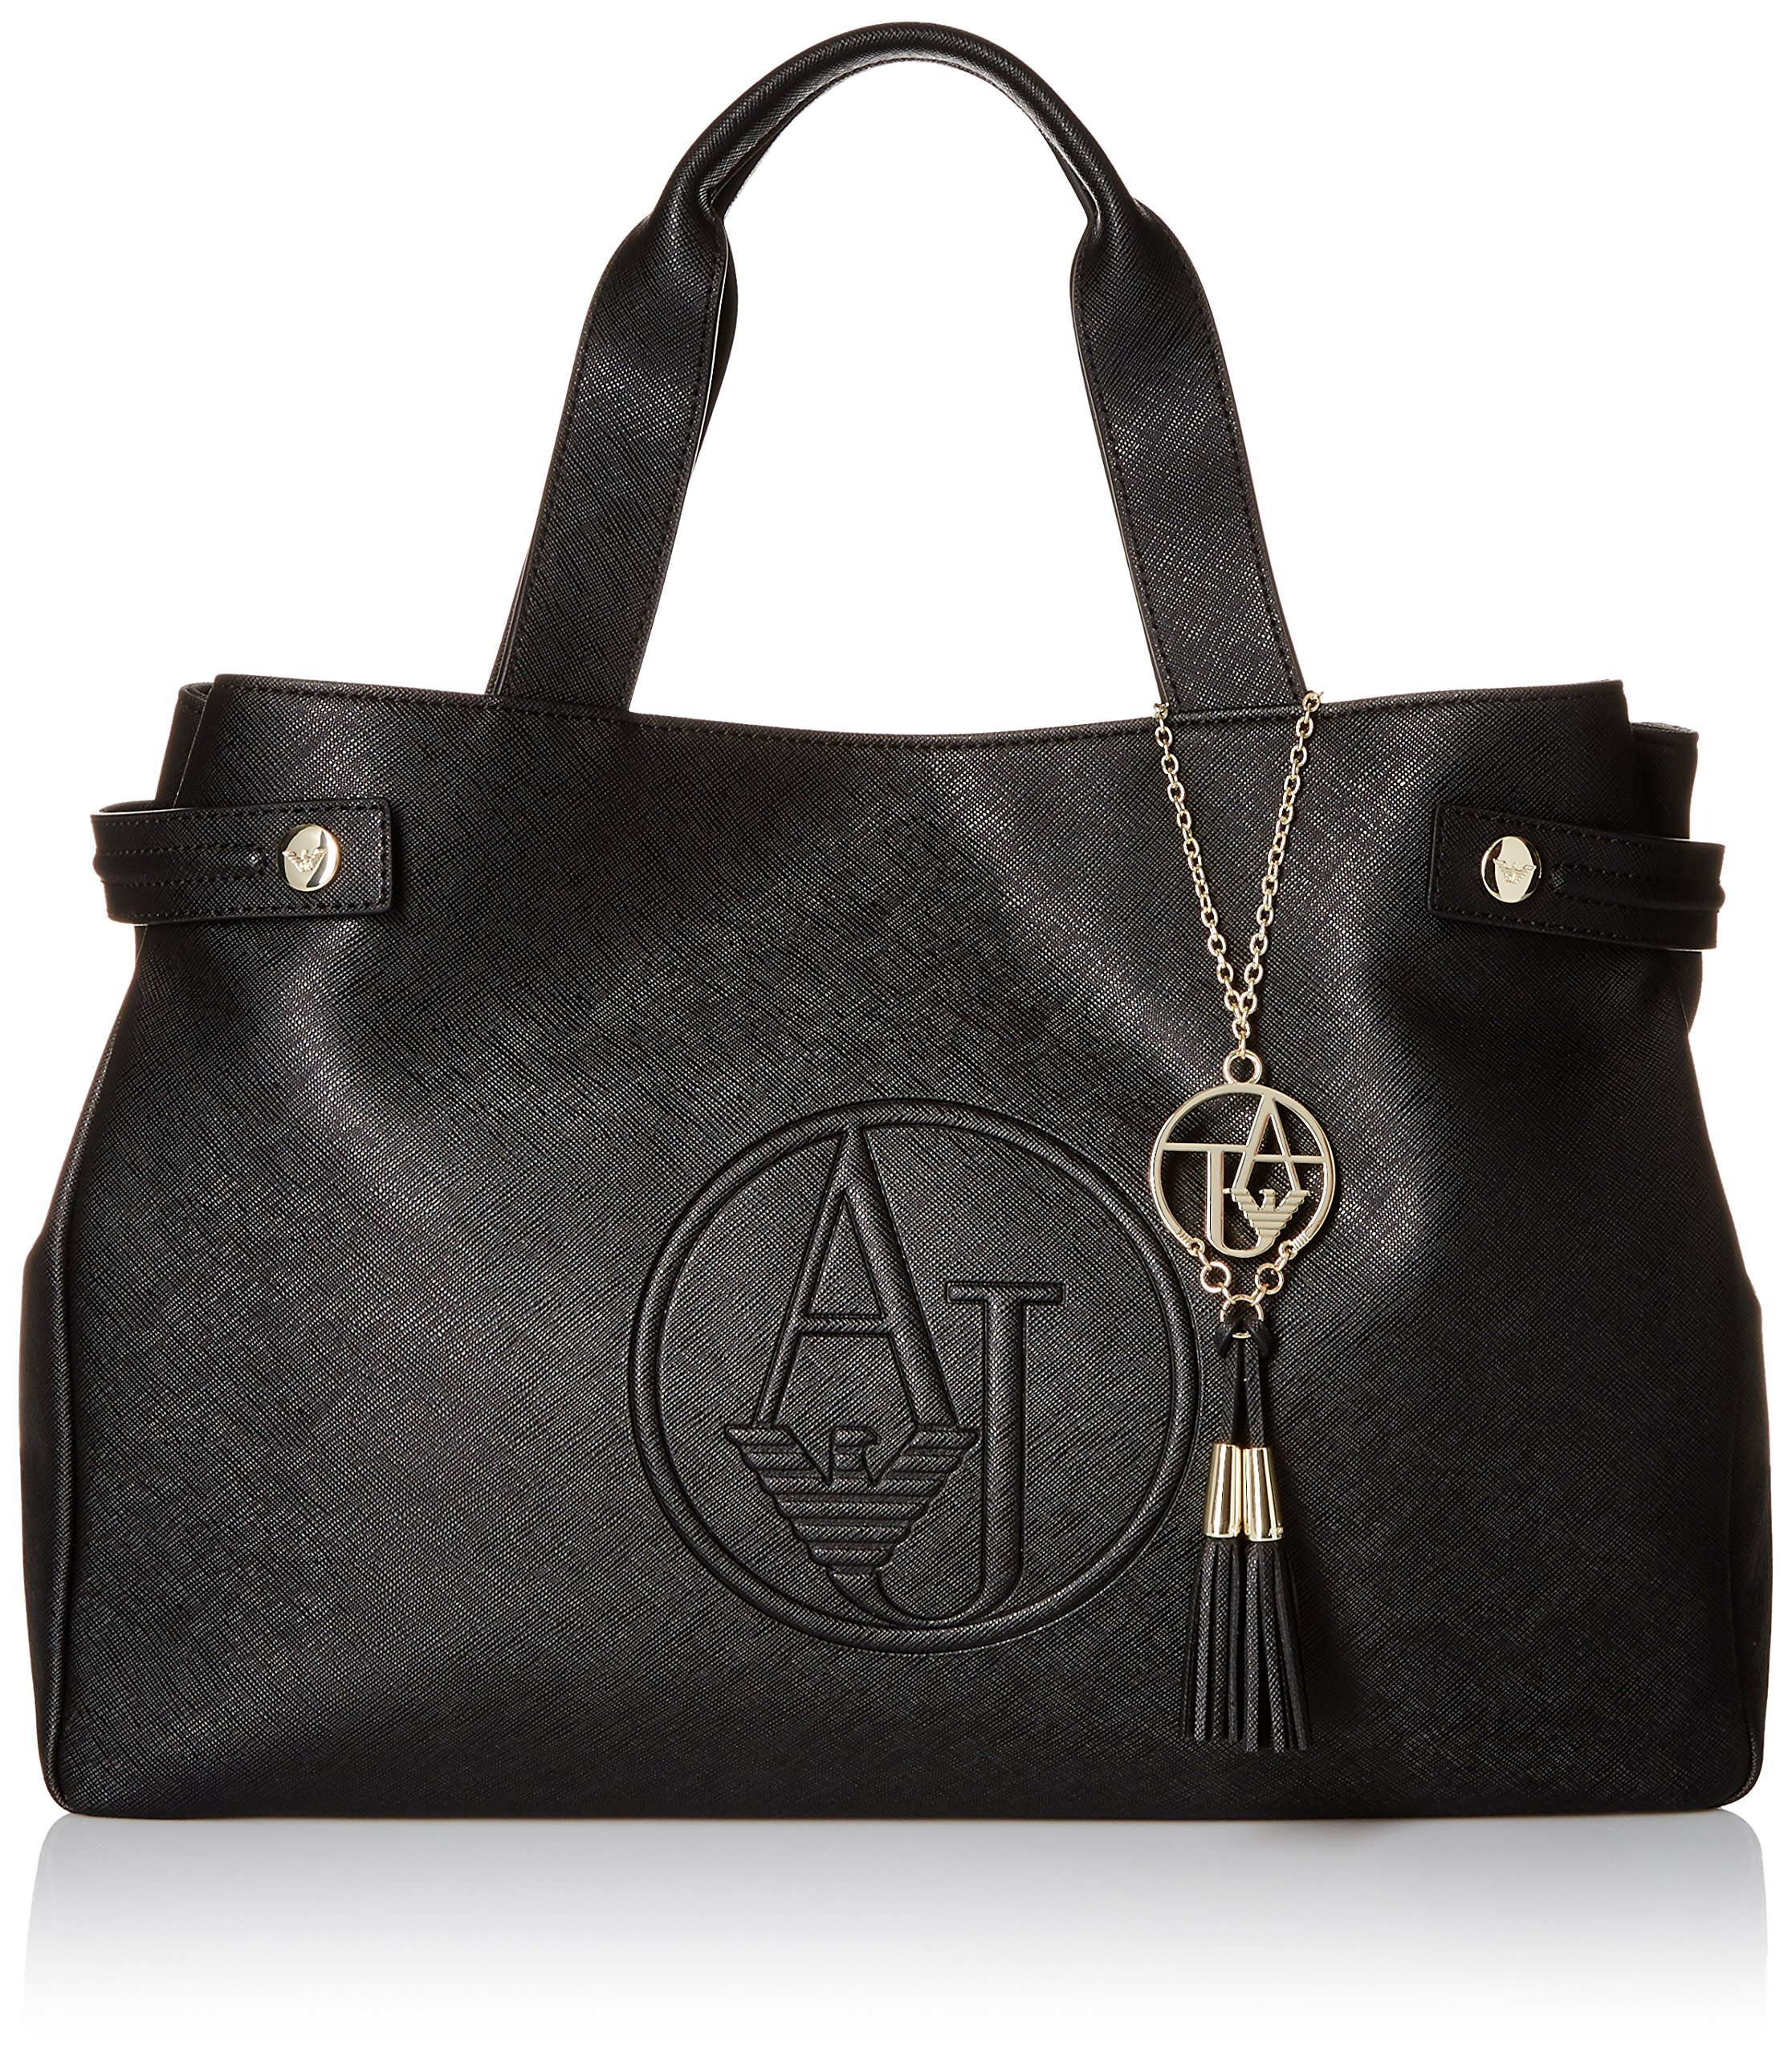 Armani Jeans Eco Saffiano Leather East West Tote, Black